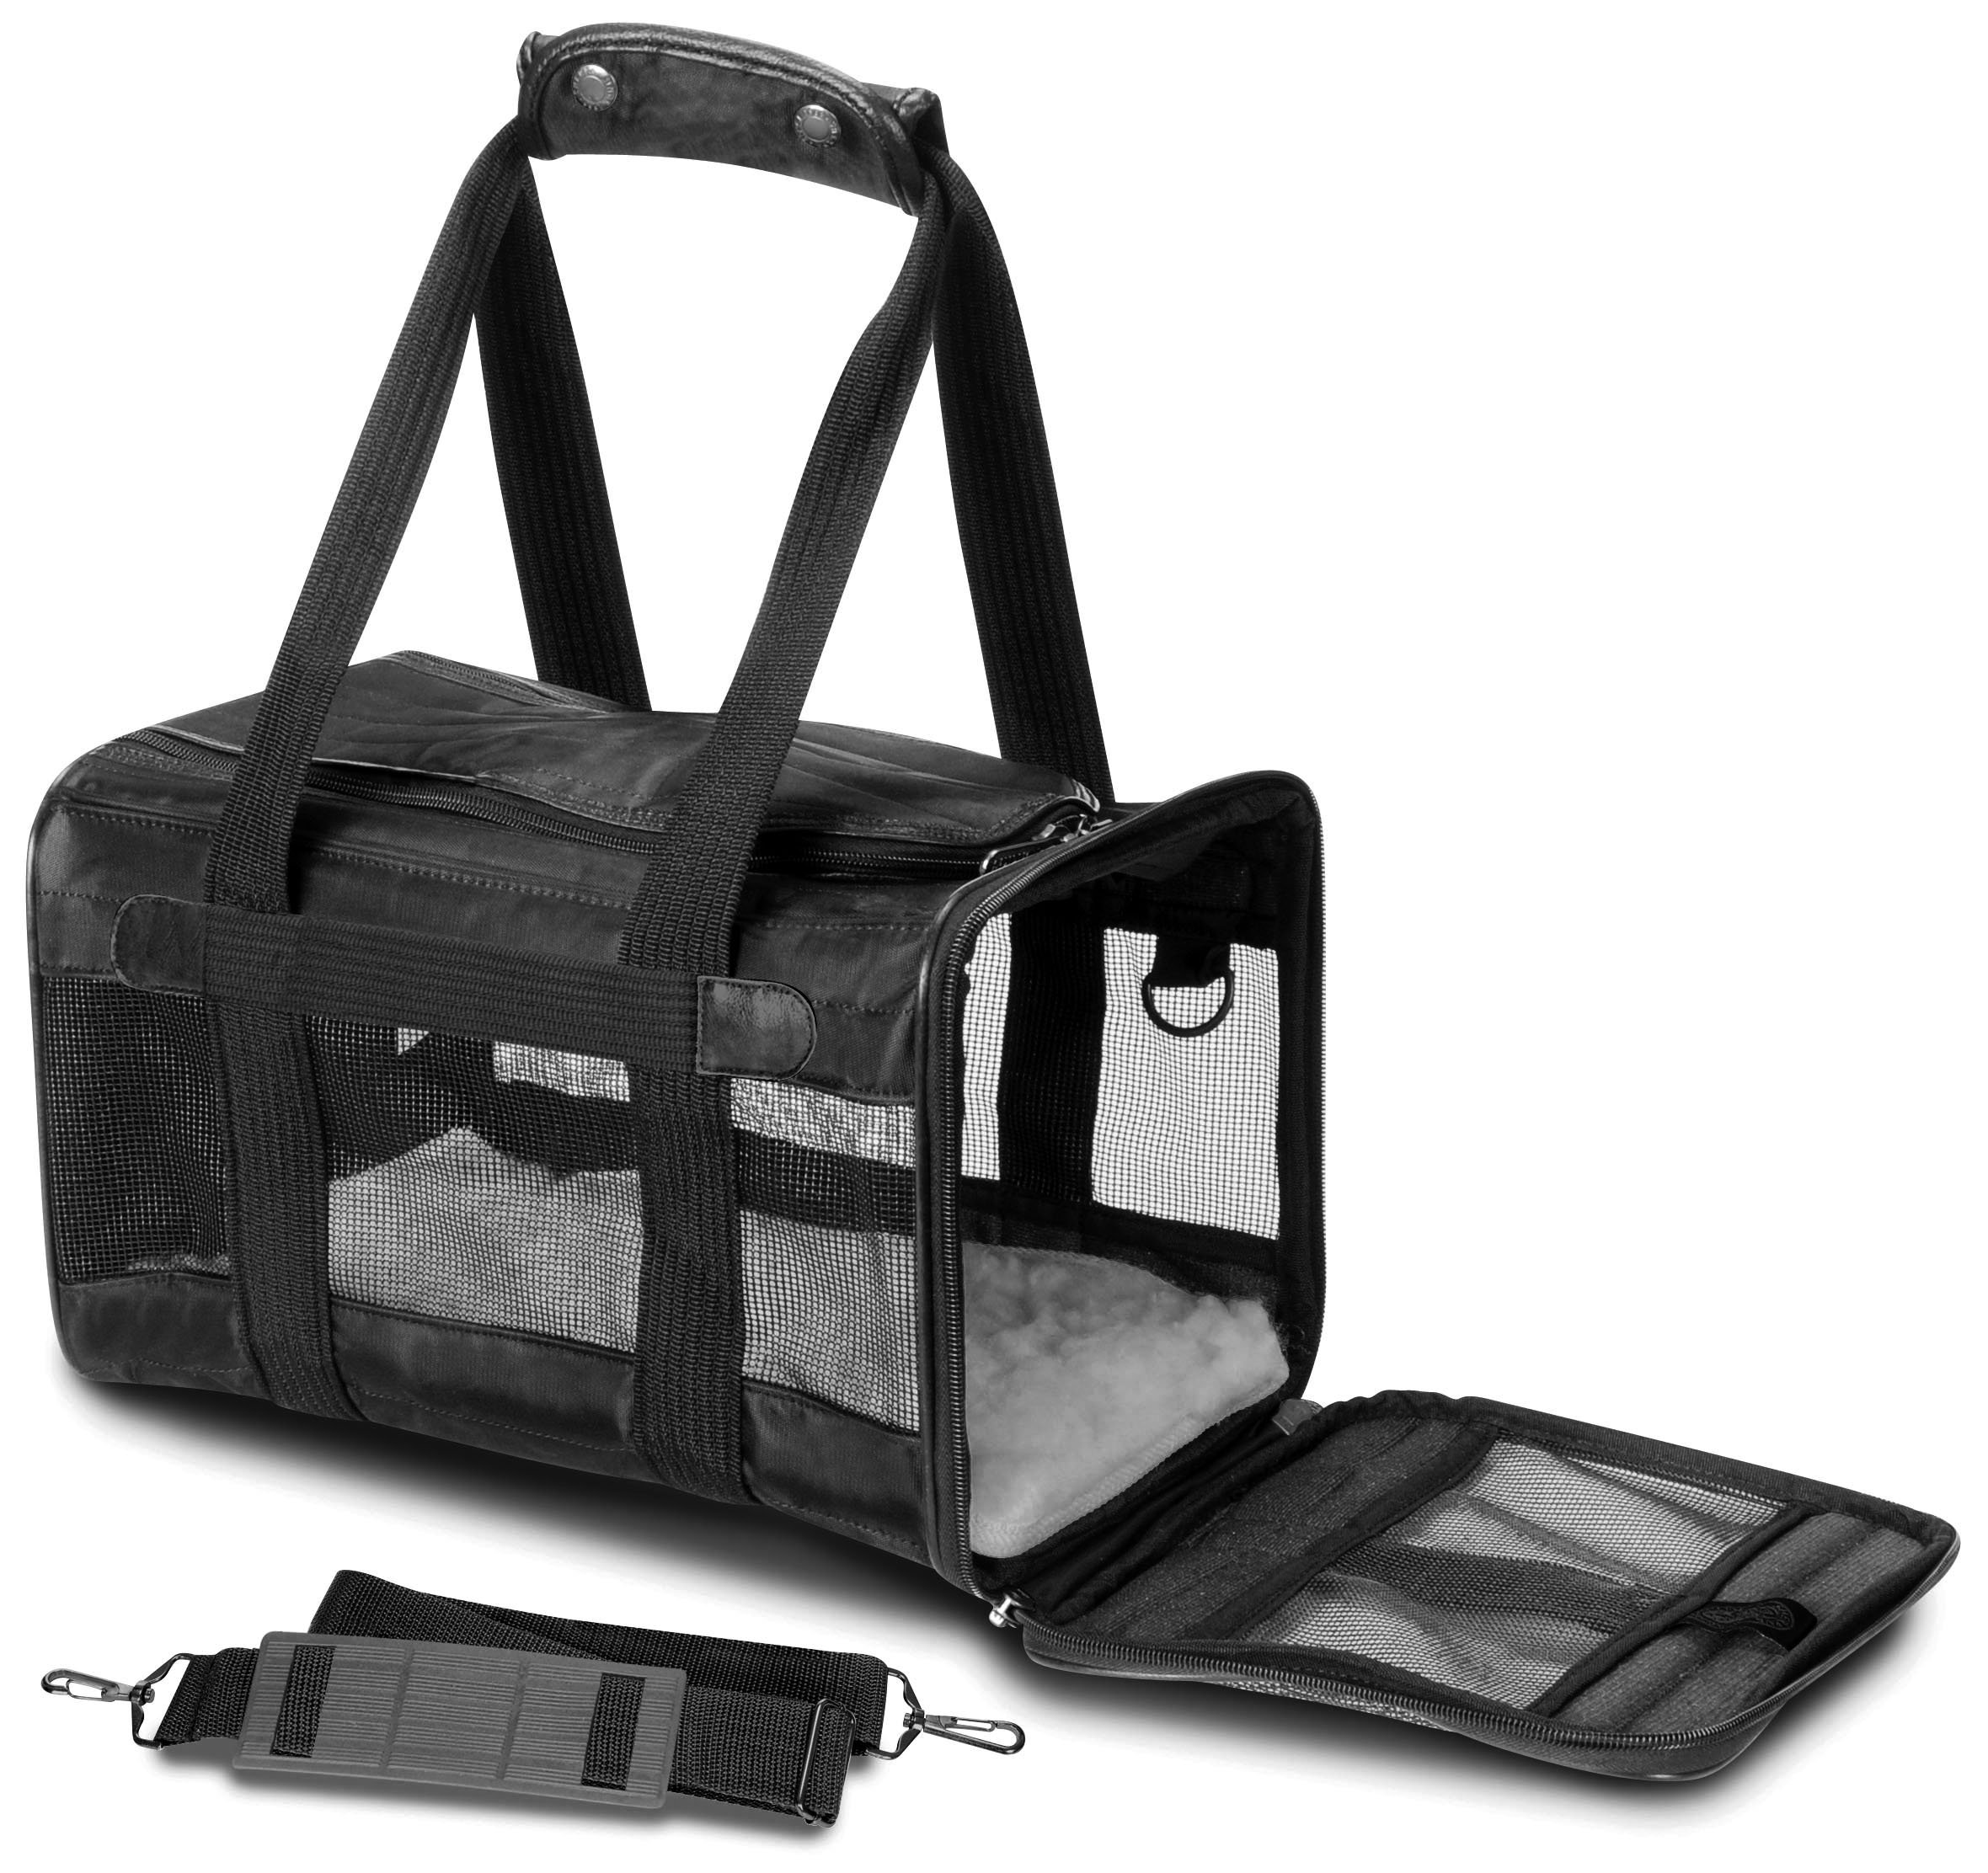 Sherpa Original Deluxe Pet Carrier, Small, Black by Sherpa